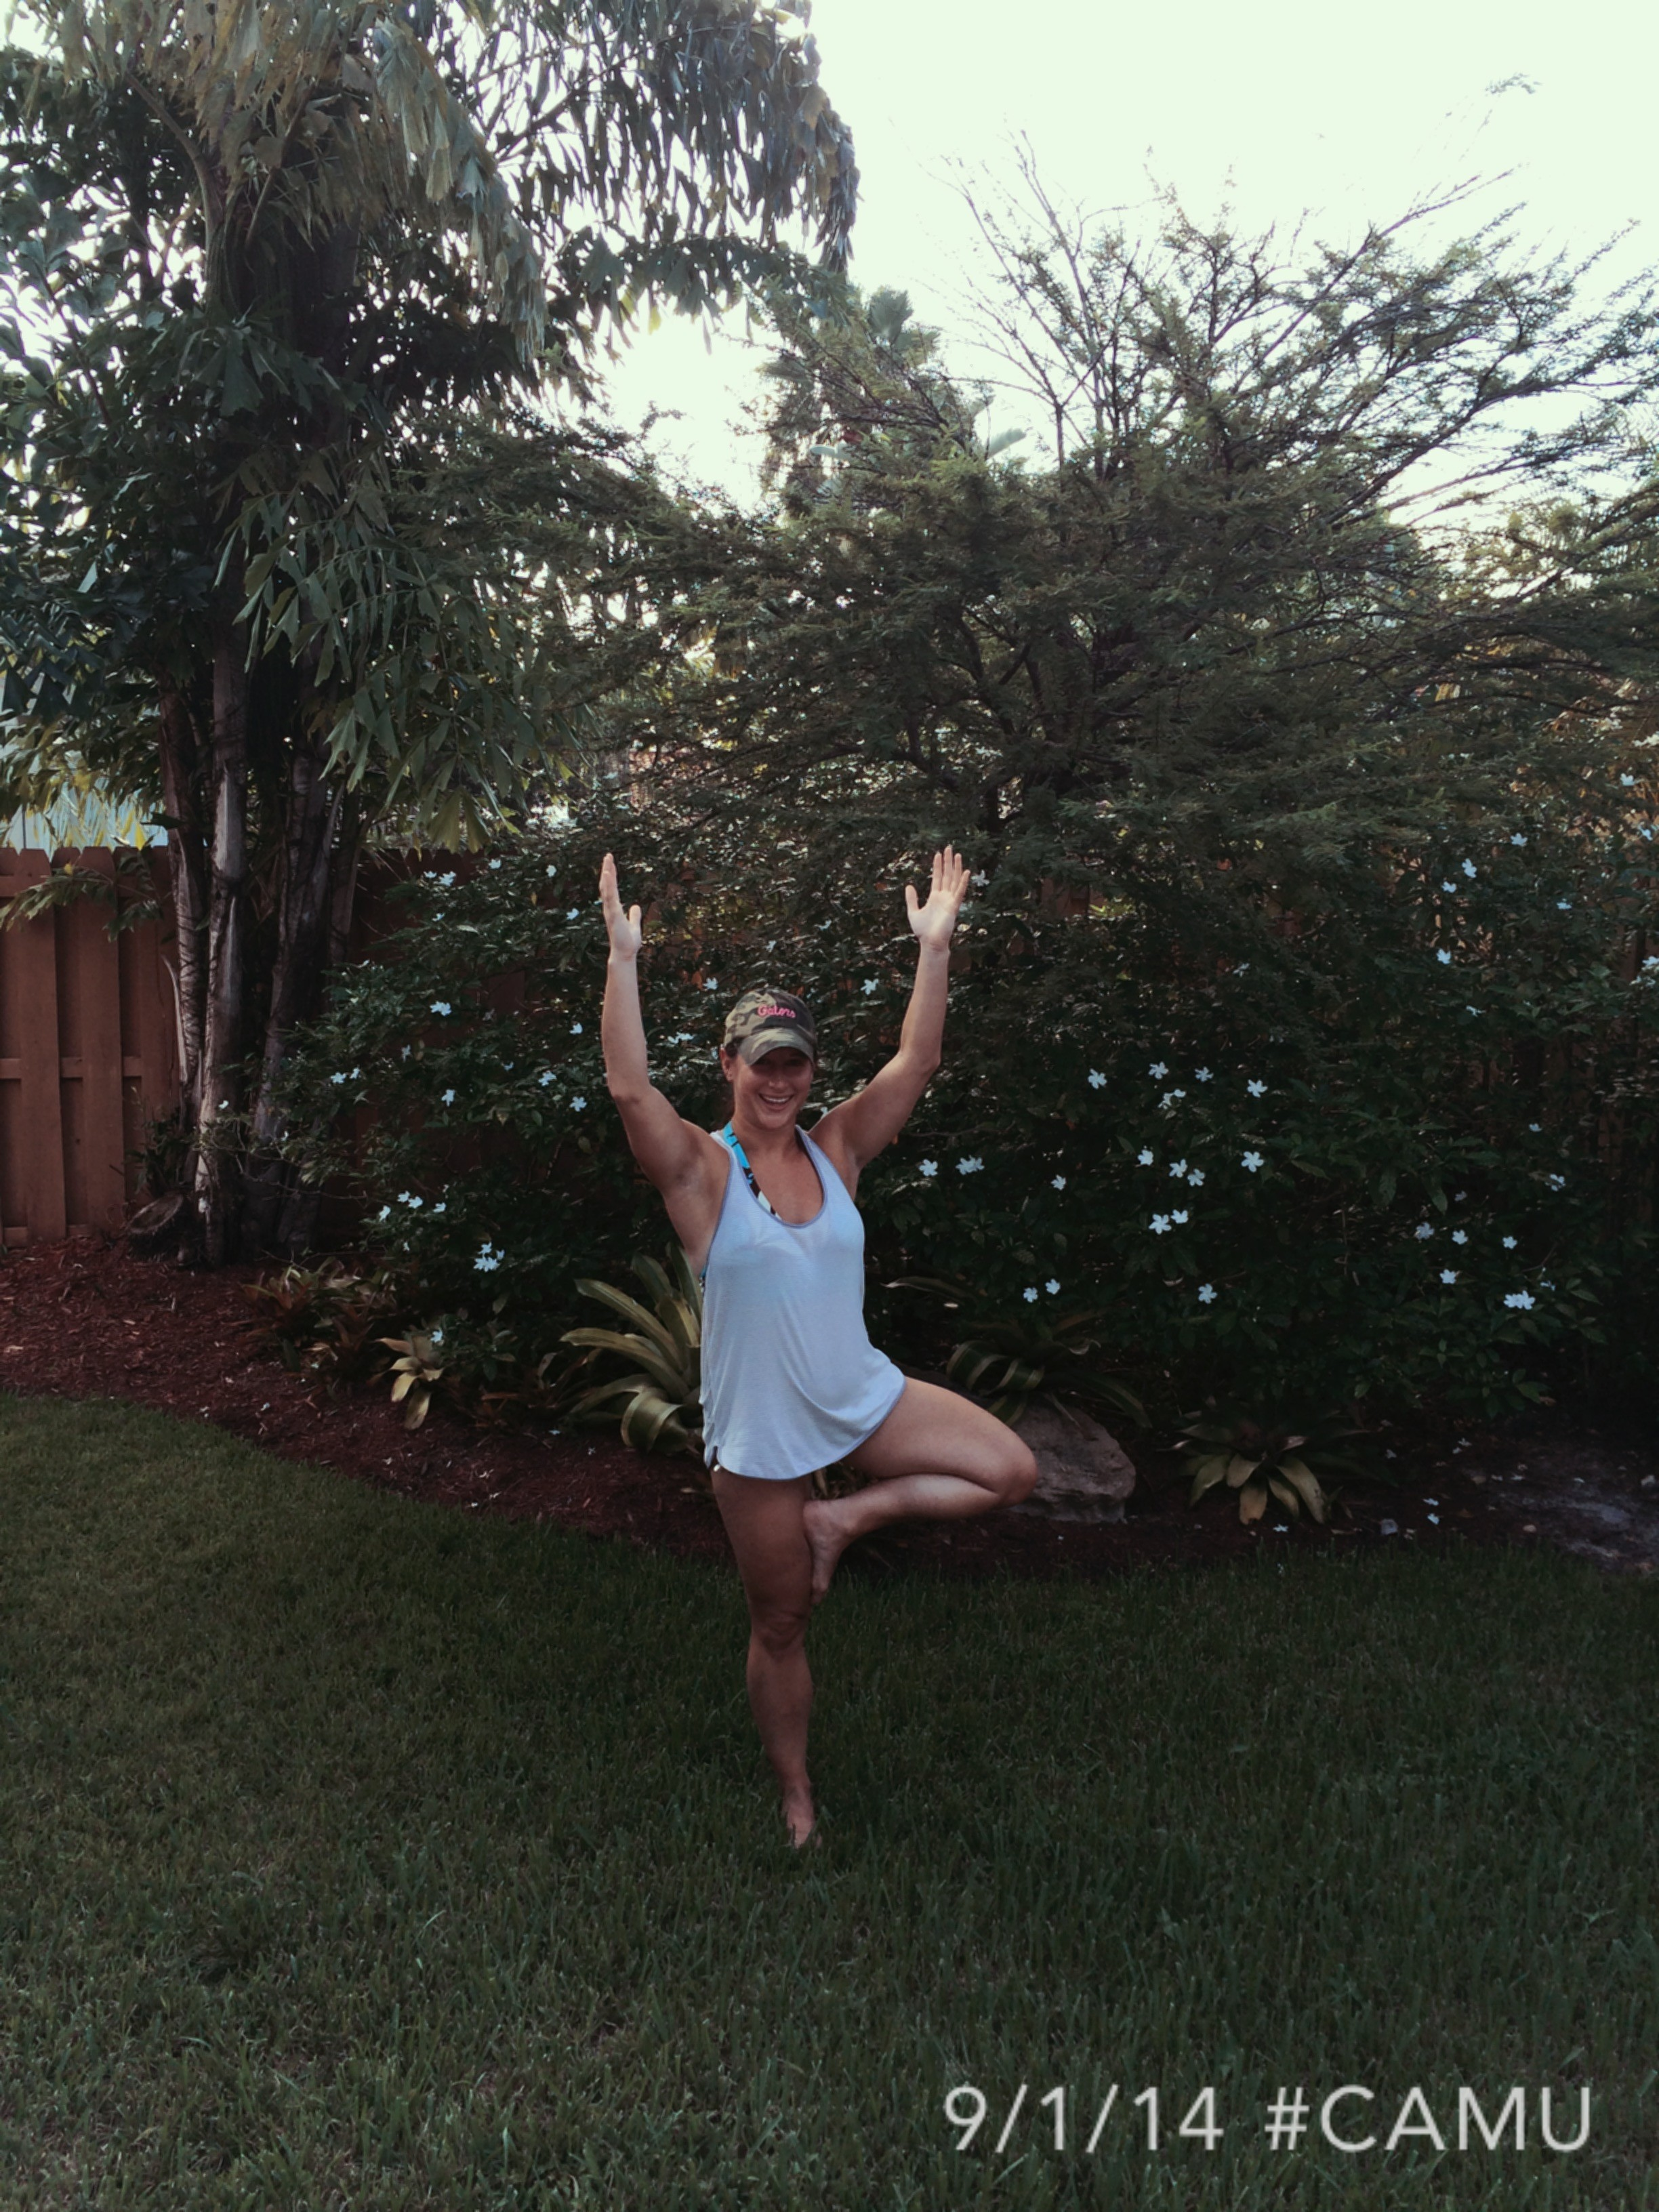 A little tree pose post floating in the pool at my inlaws